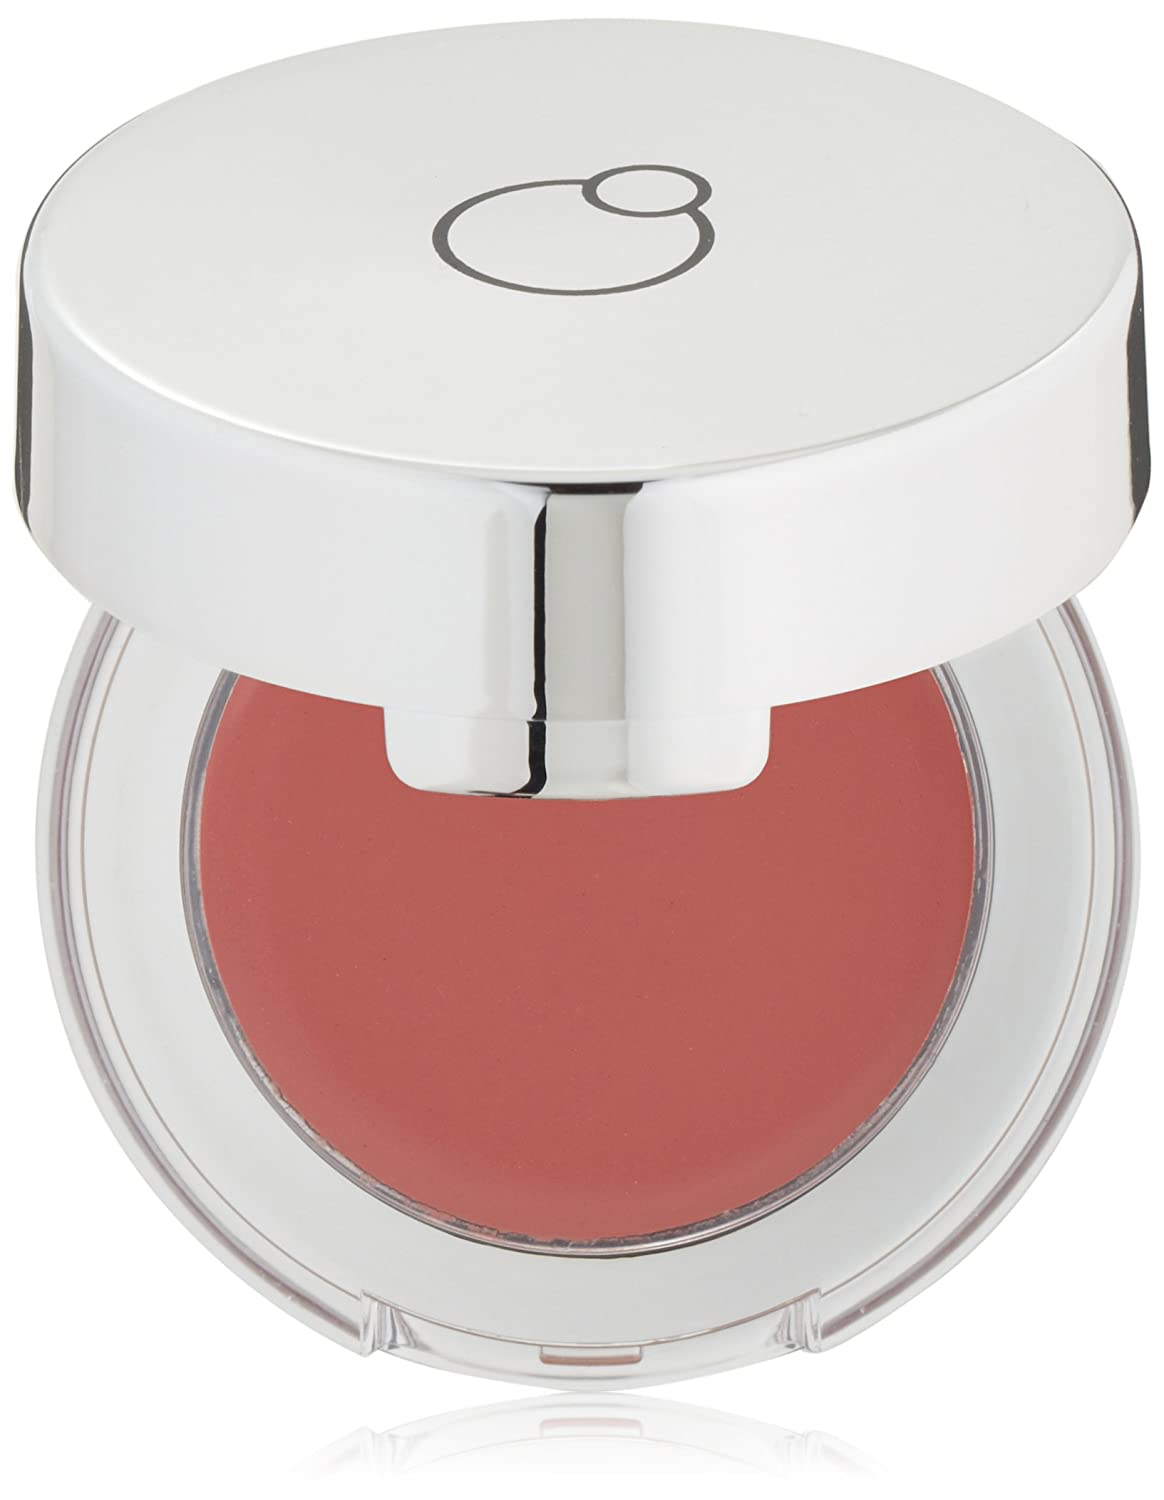 FusionBeauty Sculptdiva Contouring and Sculpting Blush with Amplifat, Haute Fusion Beauty 1 qty